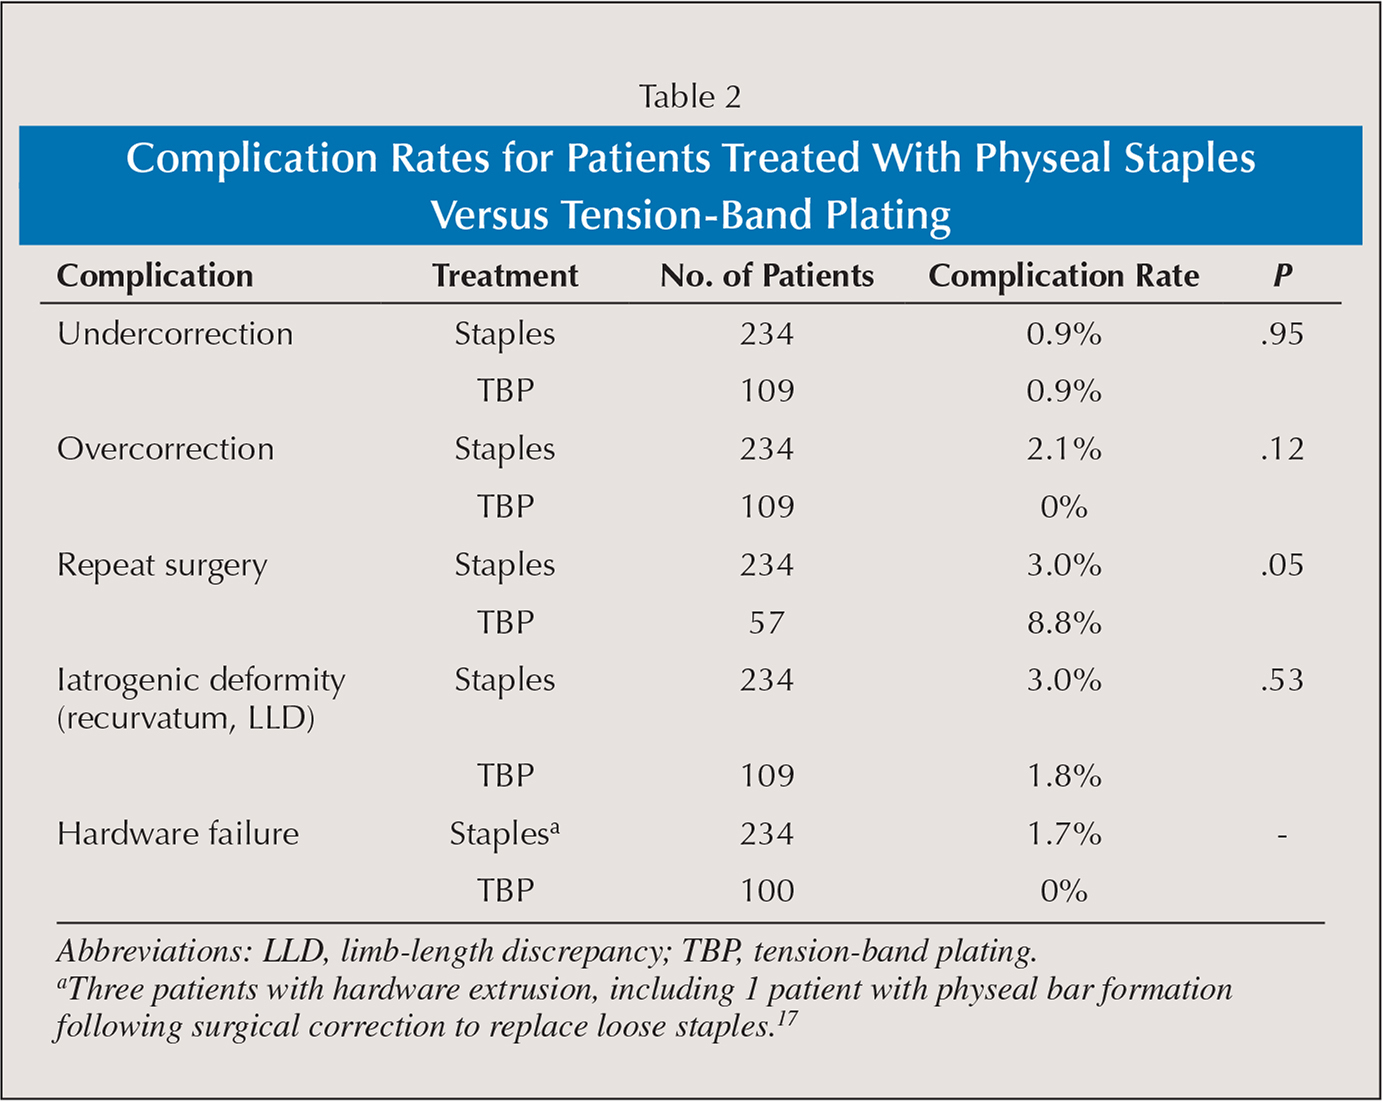 Complication Rates for Patients Treated With Physeal Staples Versus Tension-Band Plating